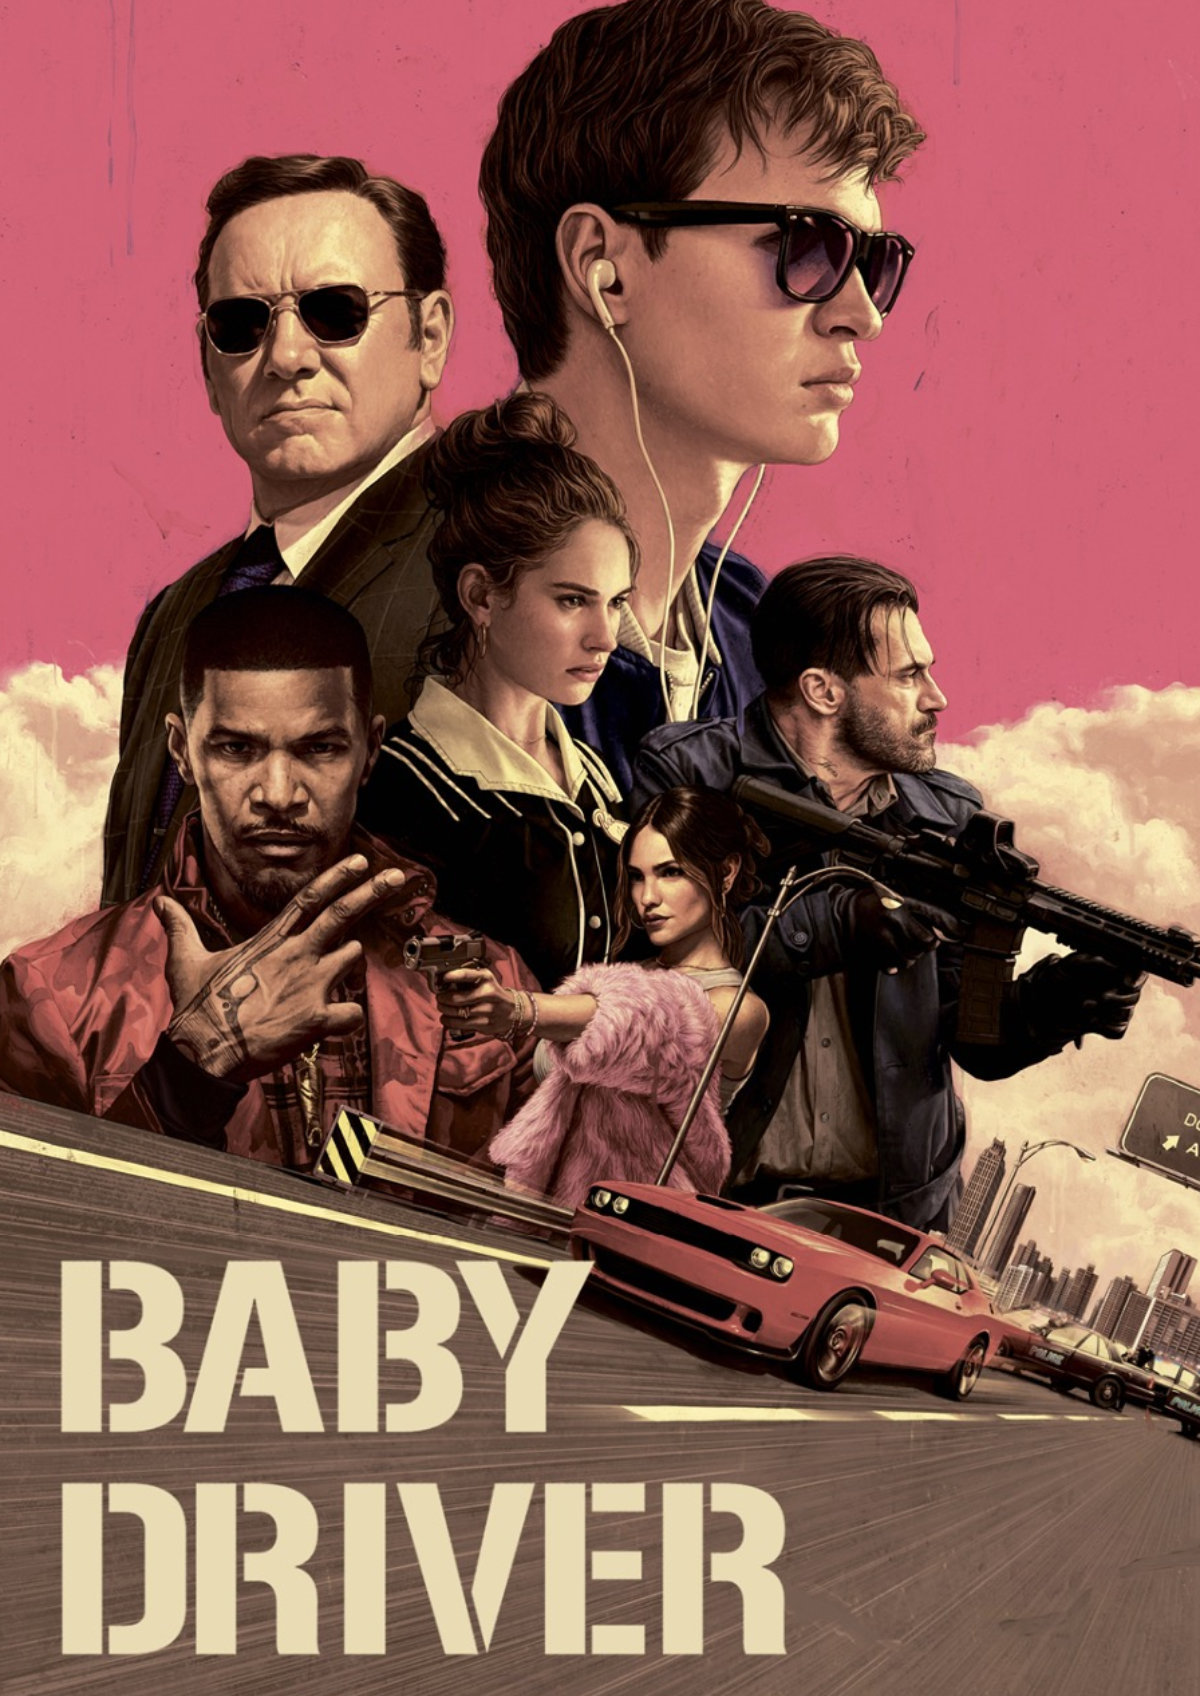 'Baby Driver' movie poster